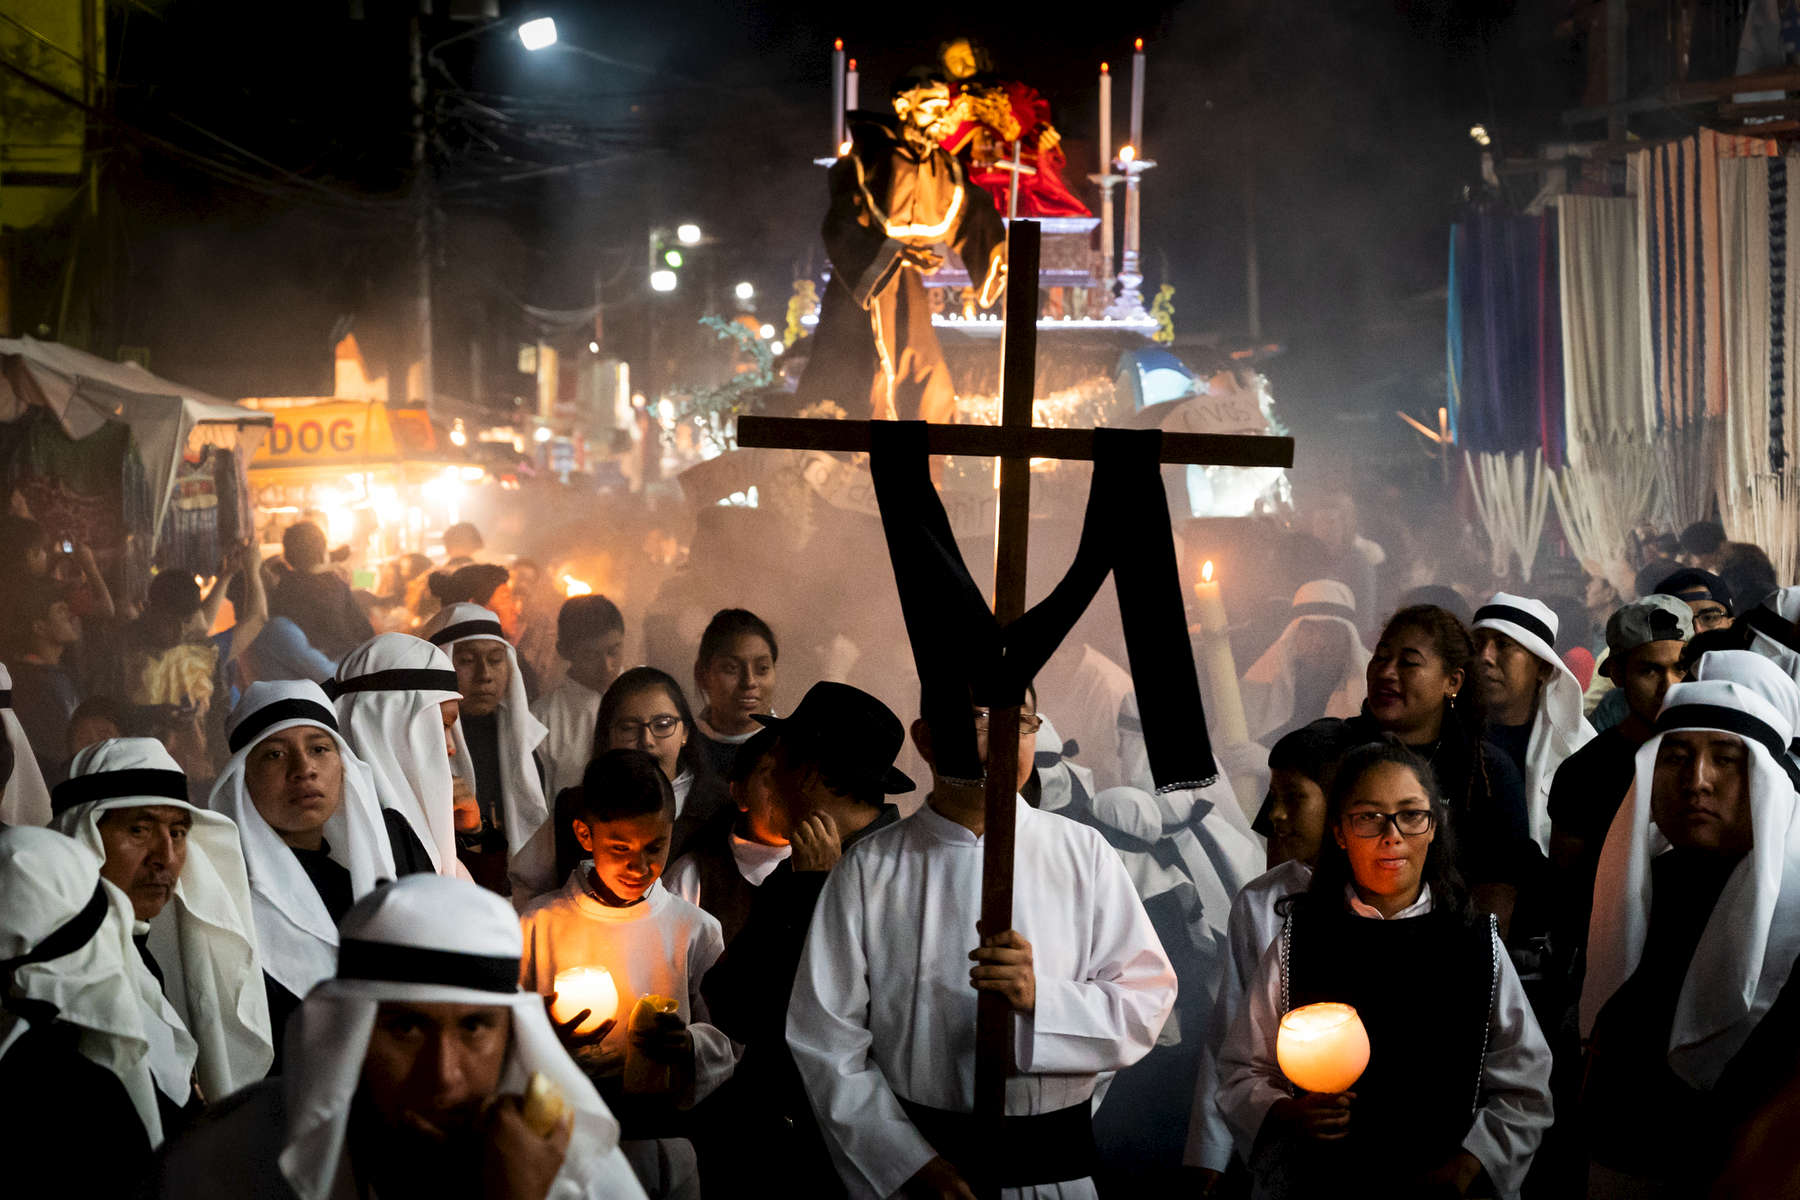 The procession makes its' way down Panajachel's main street, Calle Santander, on April 19th.